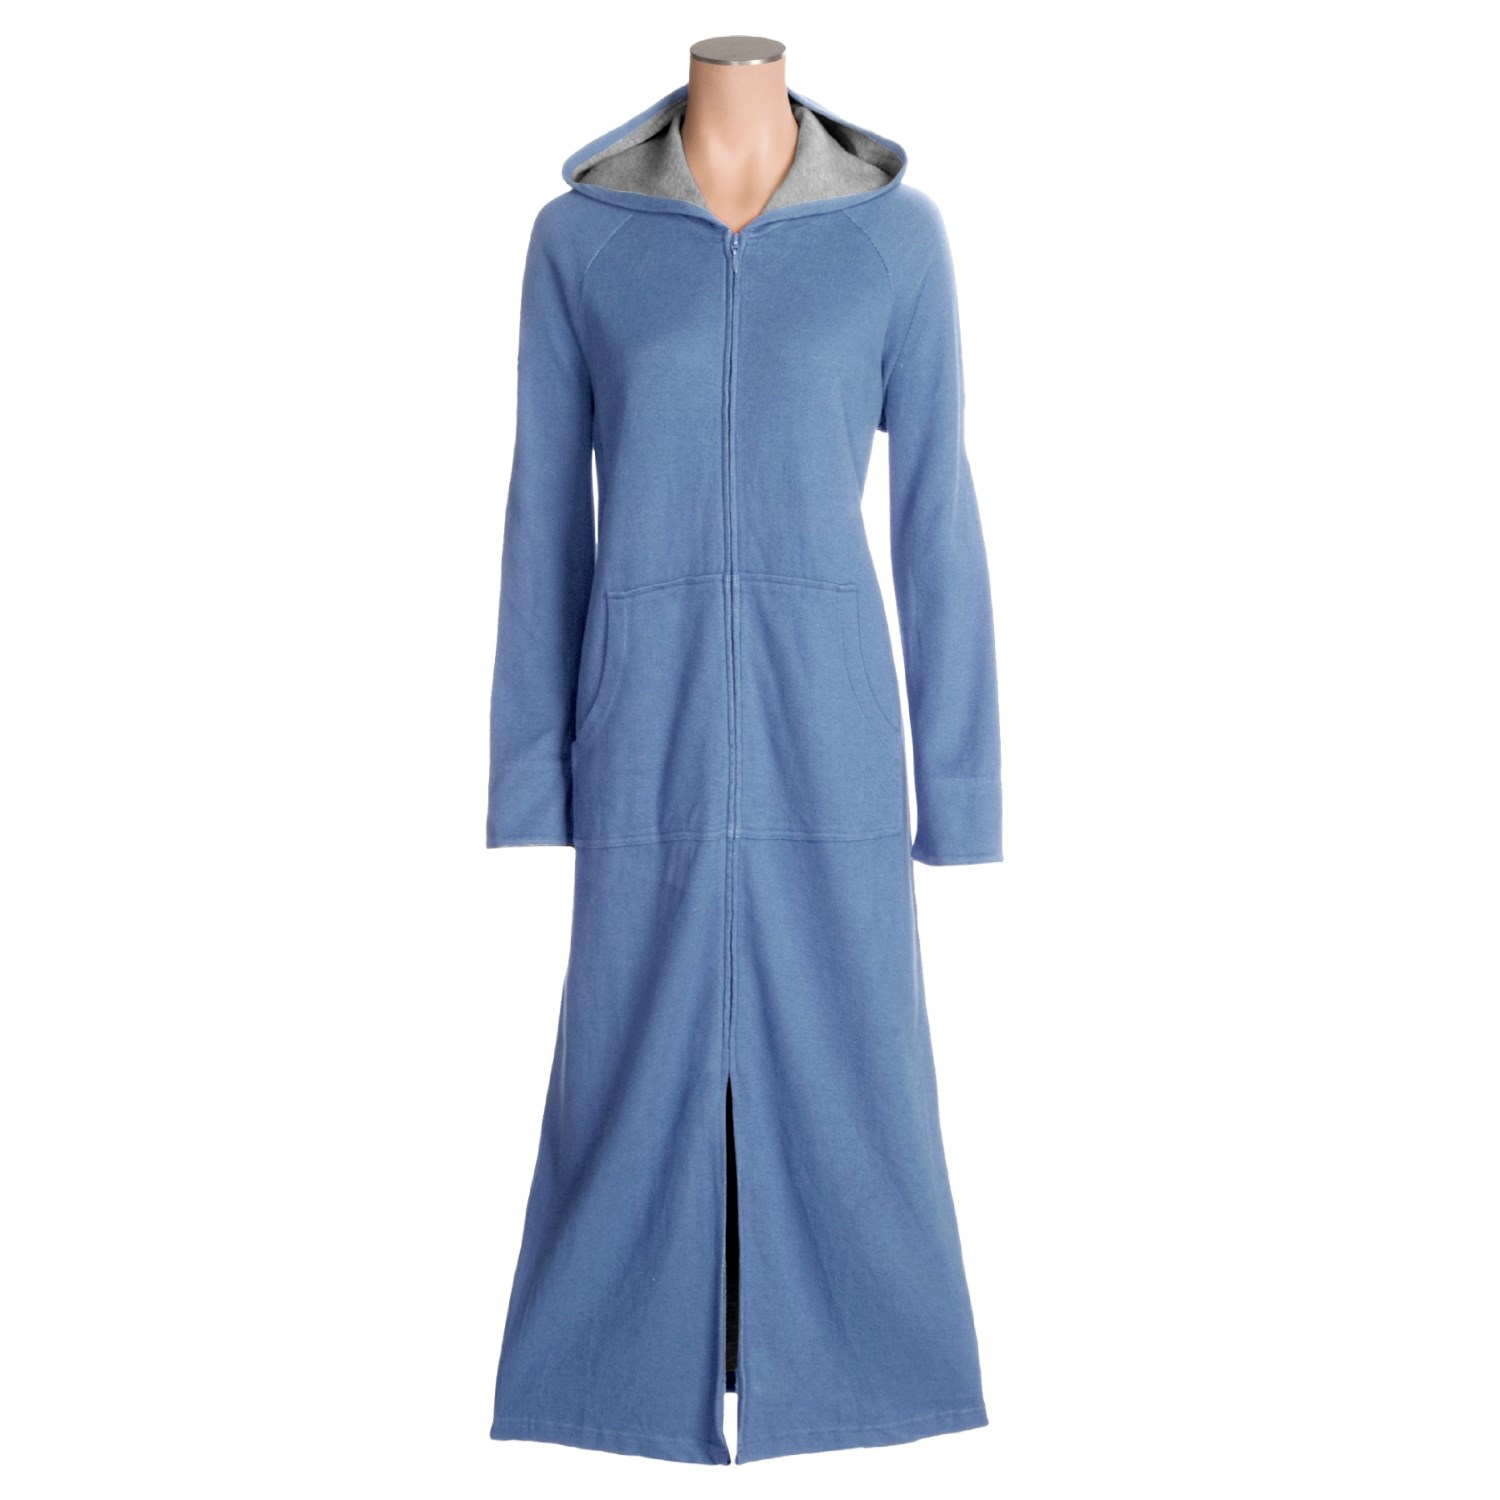 Best bathrobes for women, including Frette, Snowe, Parachute, Natori, Hanro, and bamboo and organic ones. but also makes buttery-soft bathrobes made from a cotton-poly blend. These are one of.